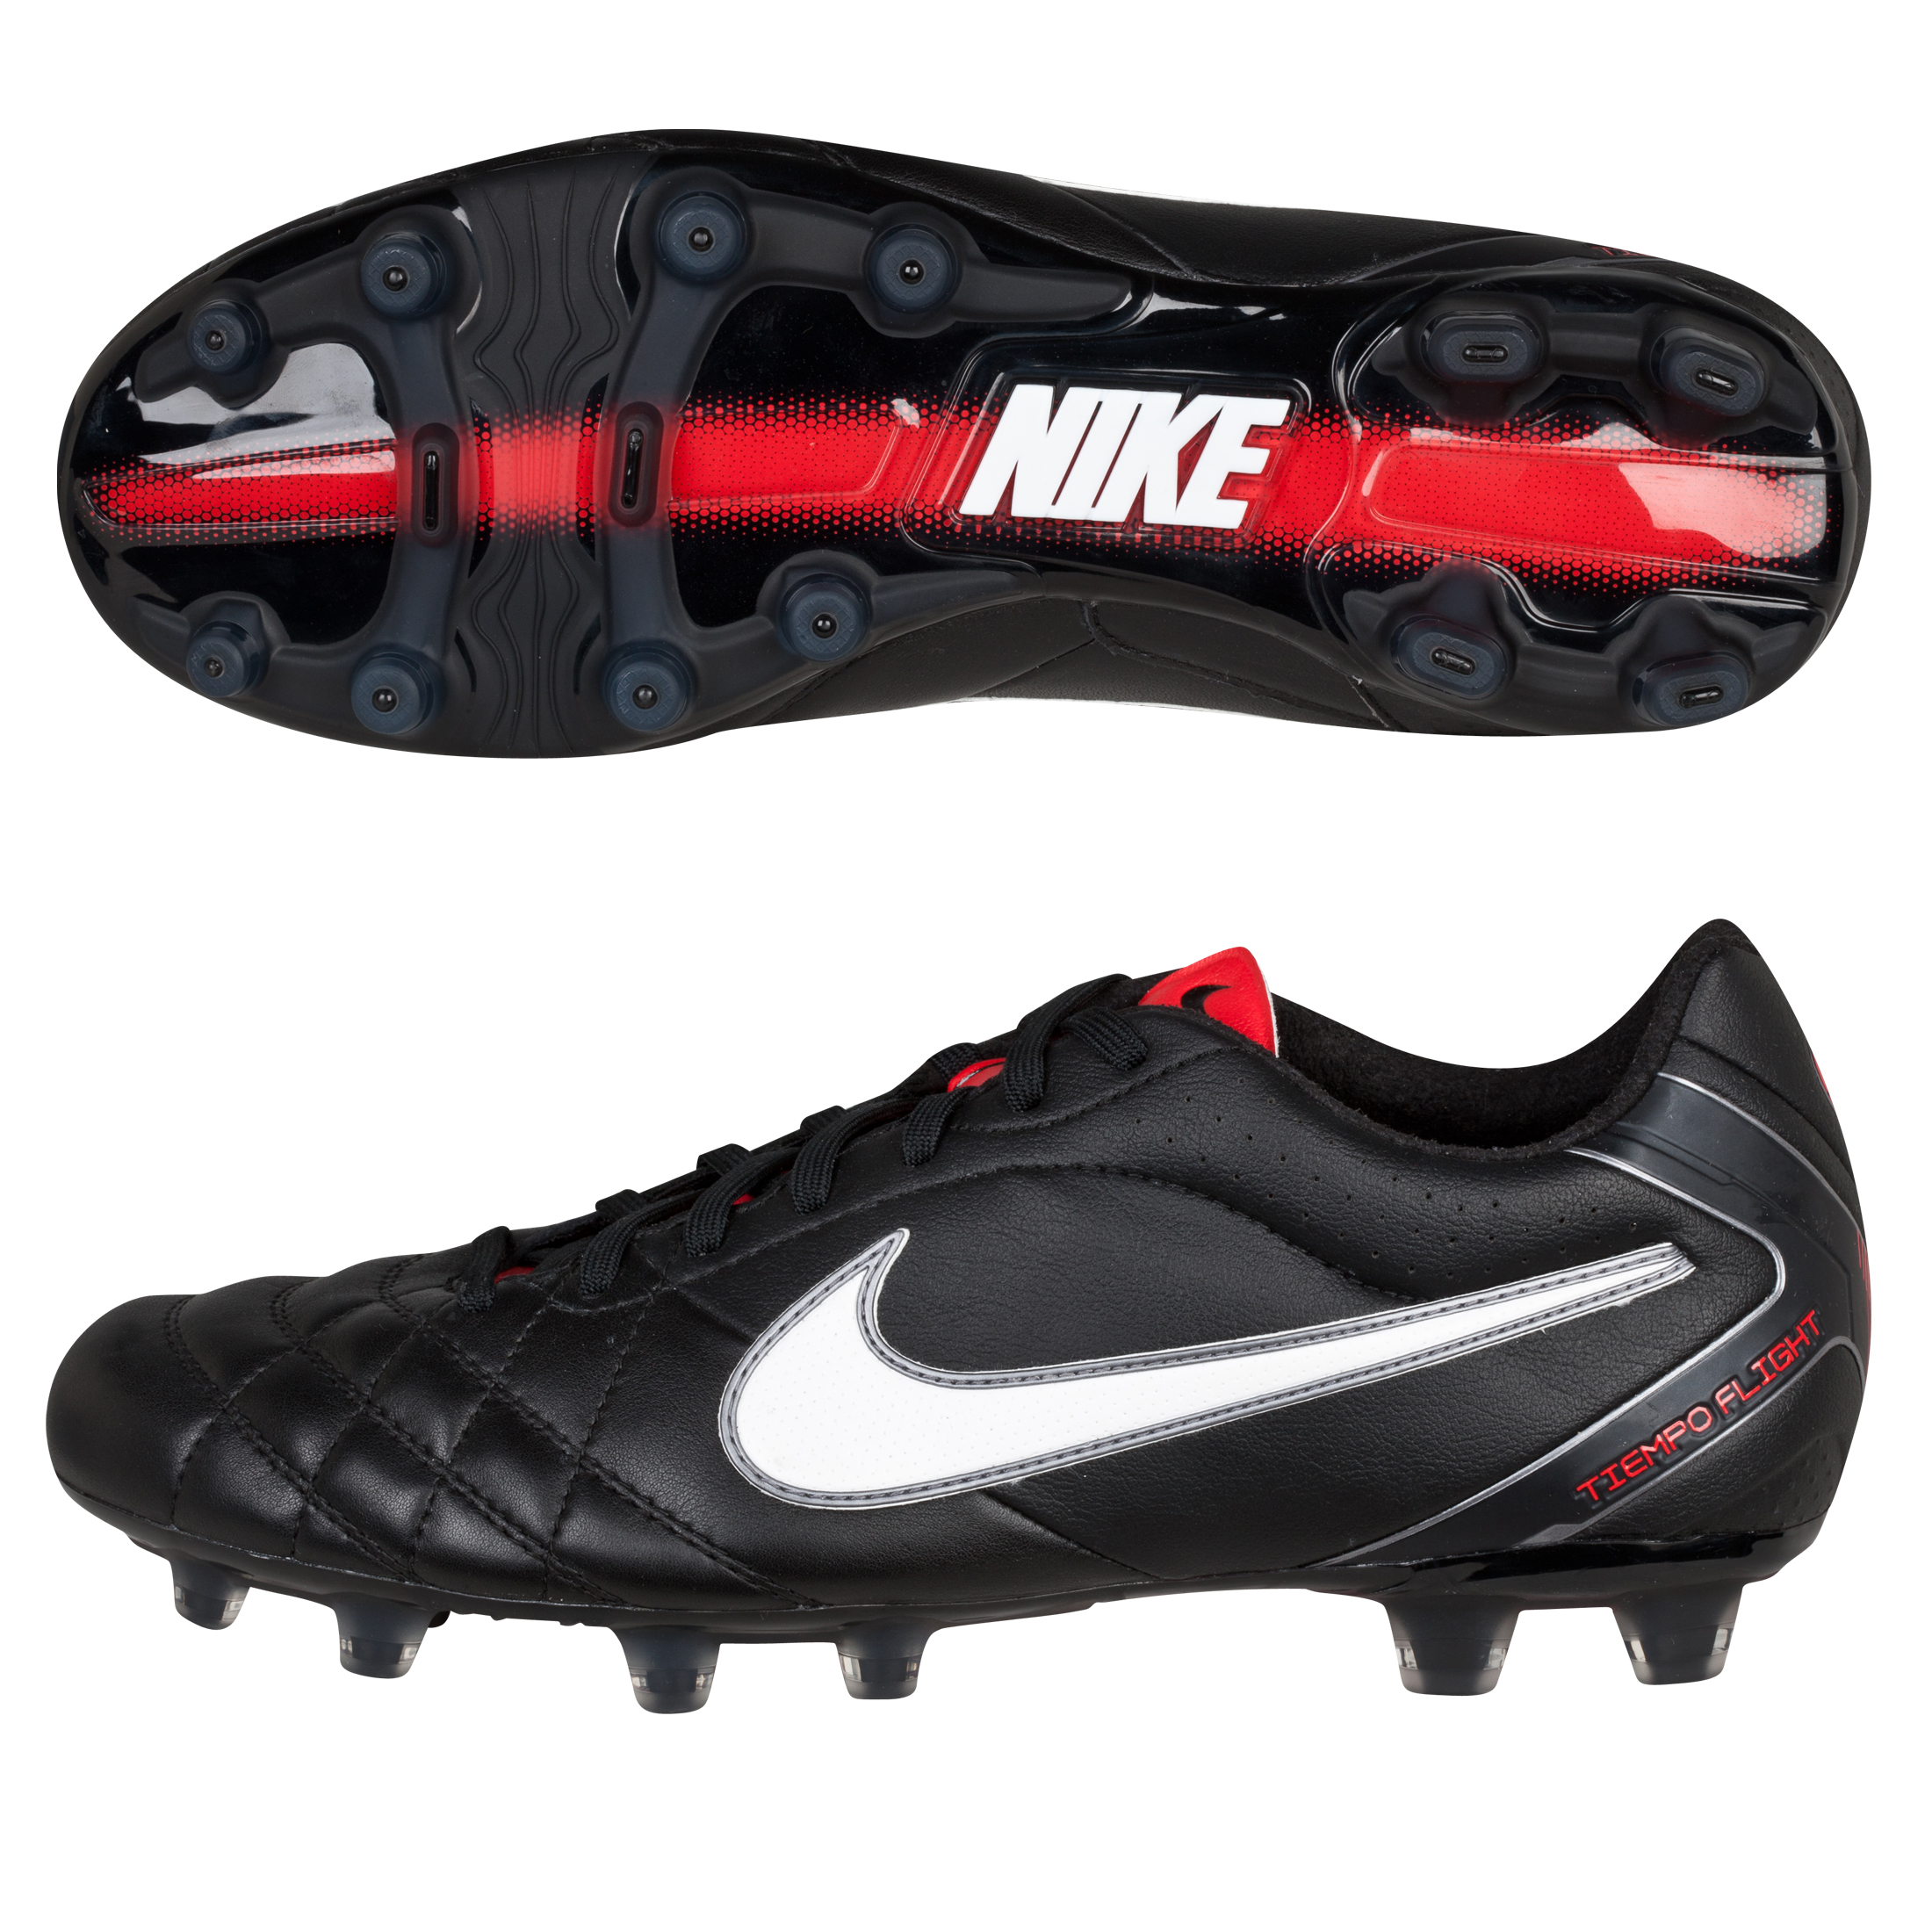 Nike Tiempo Flight Firm Ground Football Boots - Black/White/Challenge Red